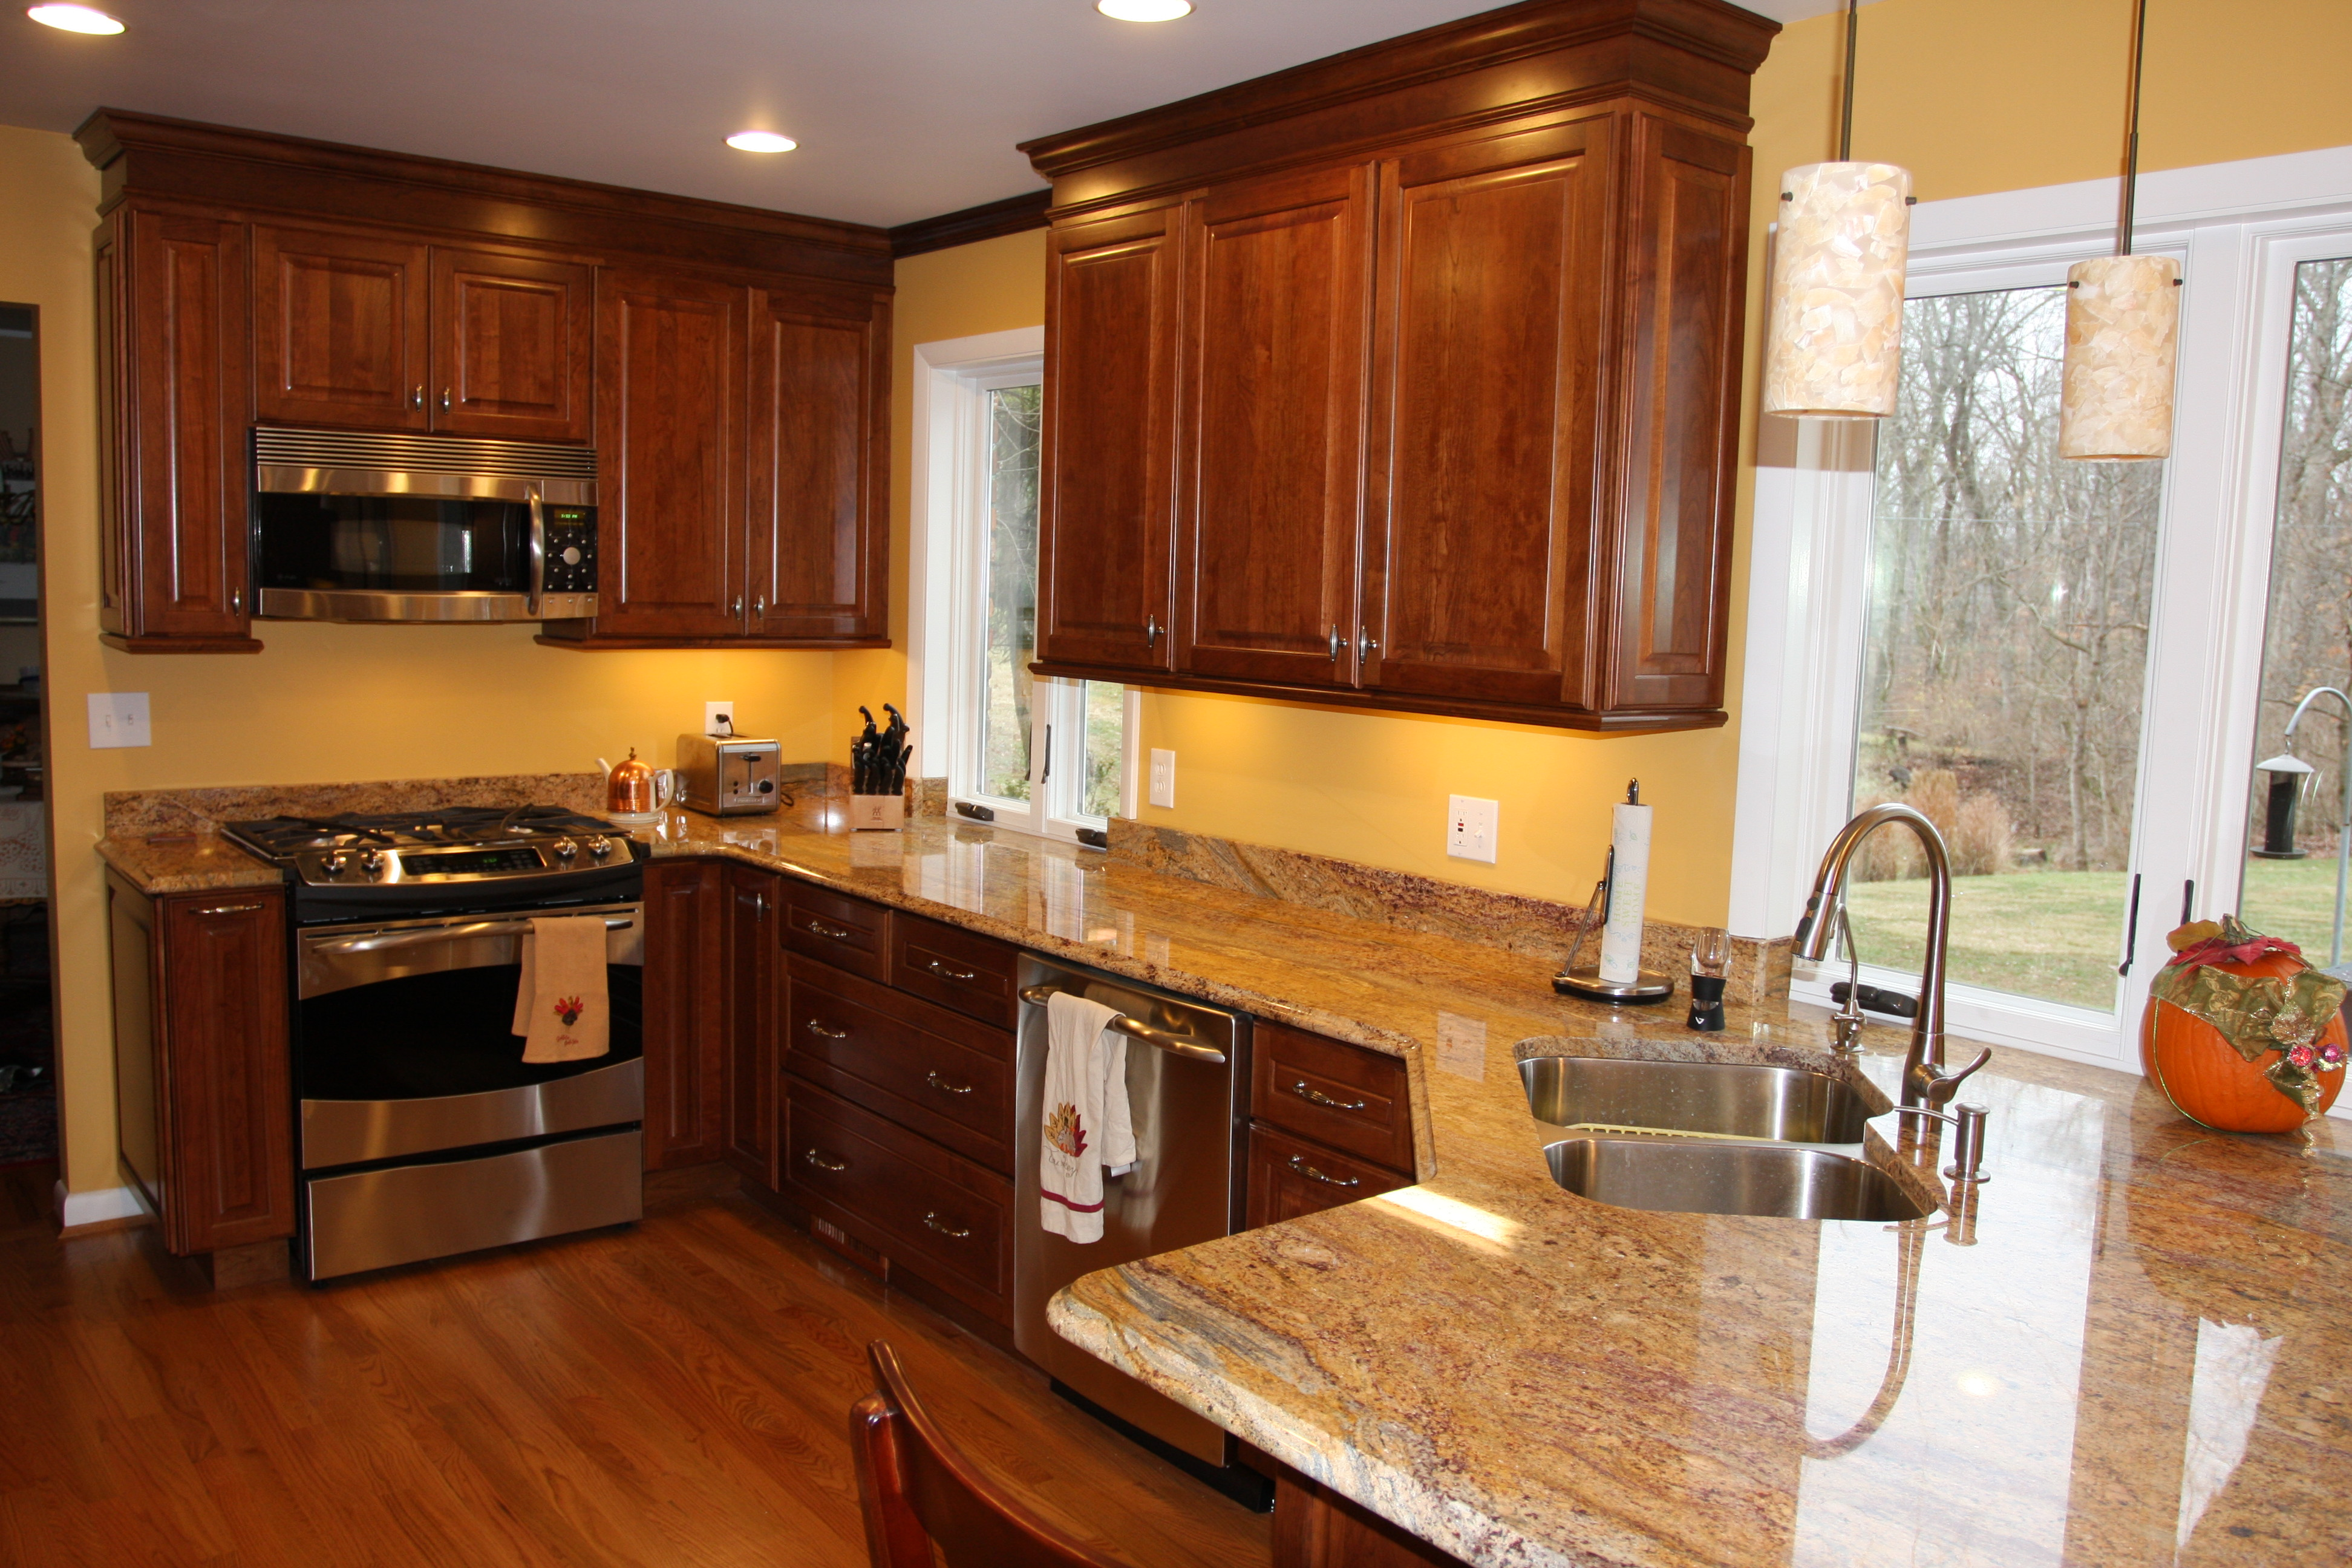 prweb kitchen remodel cincinnati This cherry kitchen has an elegant look and feel Cherry cabinets add an elegant feel to this remodeling job